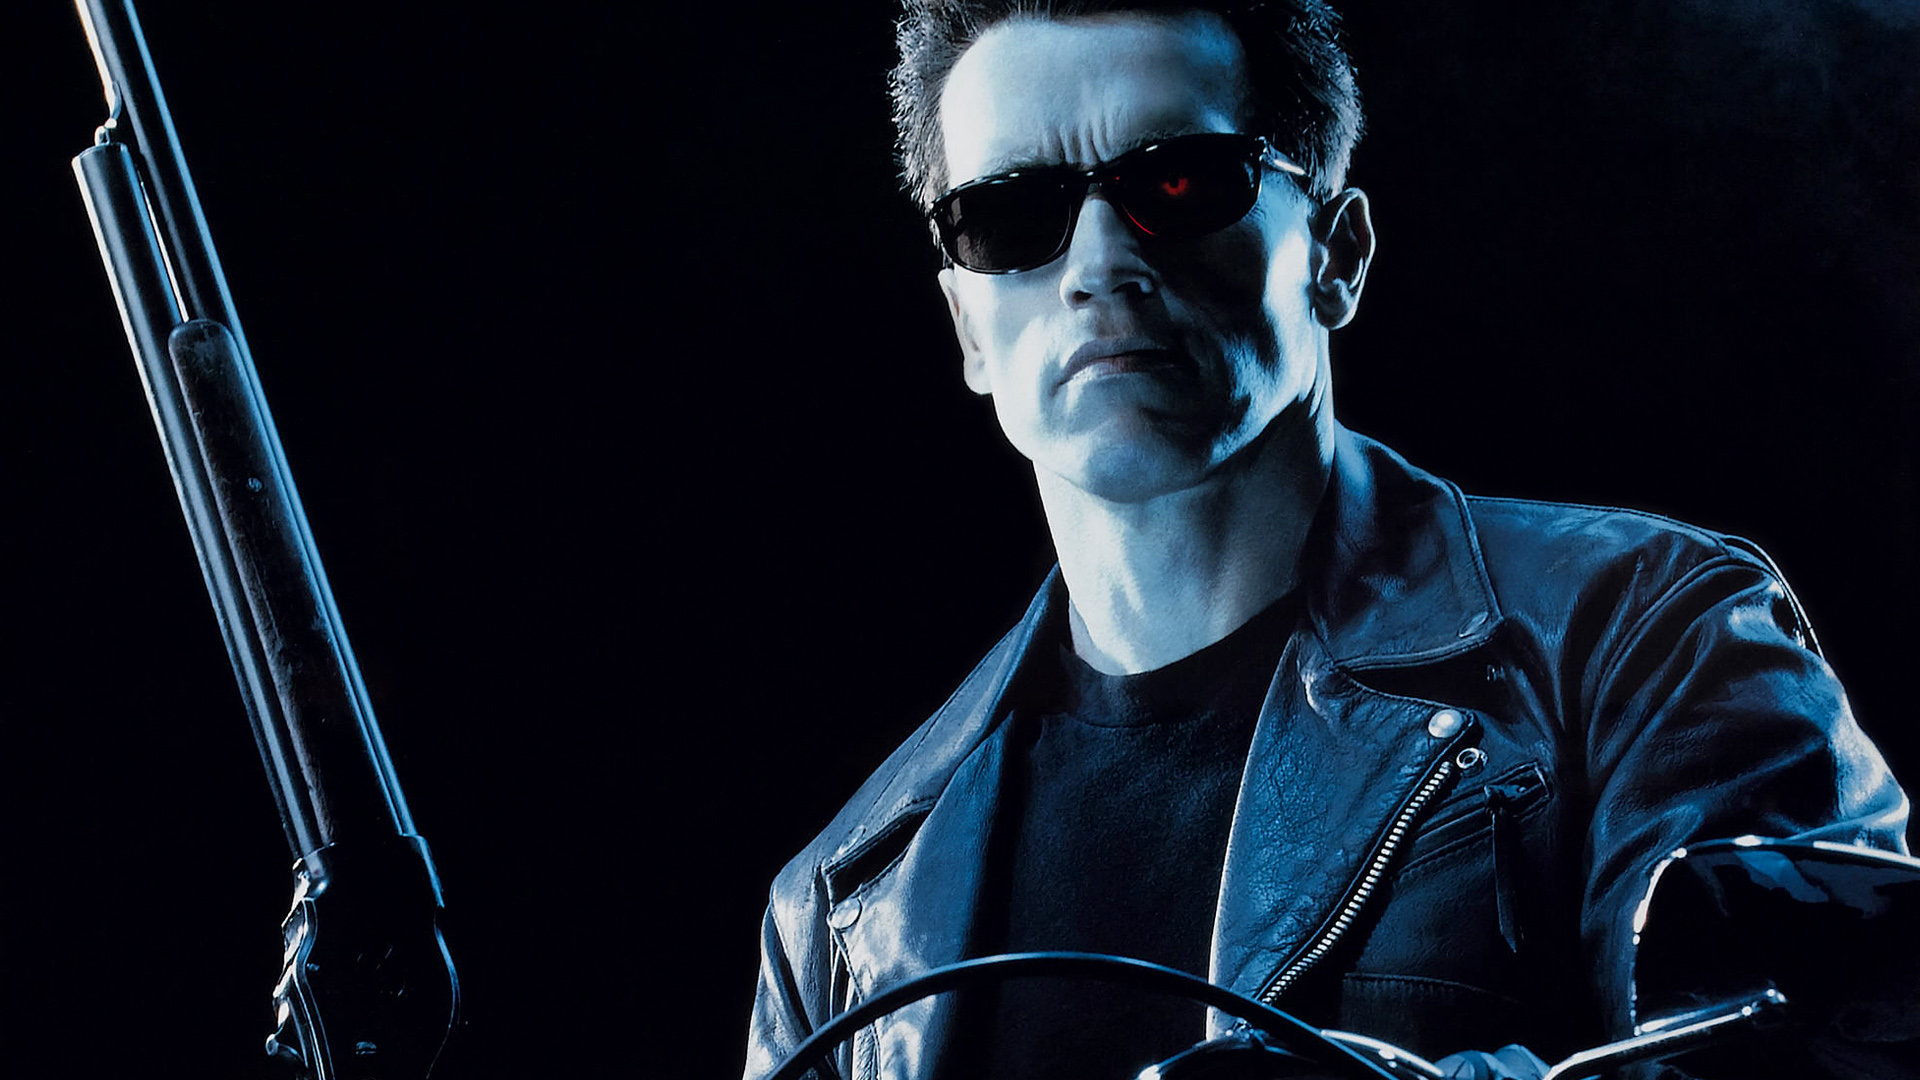 Terminator 2 - I'll Be Back Wallpapers